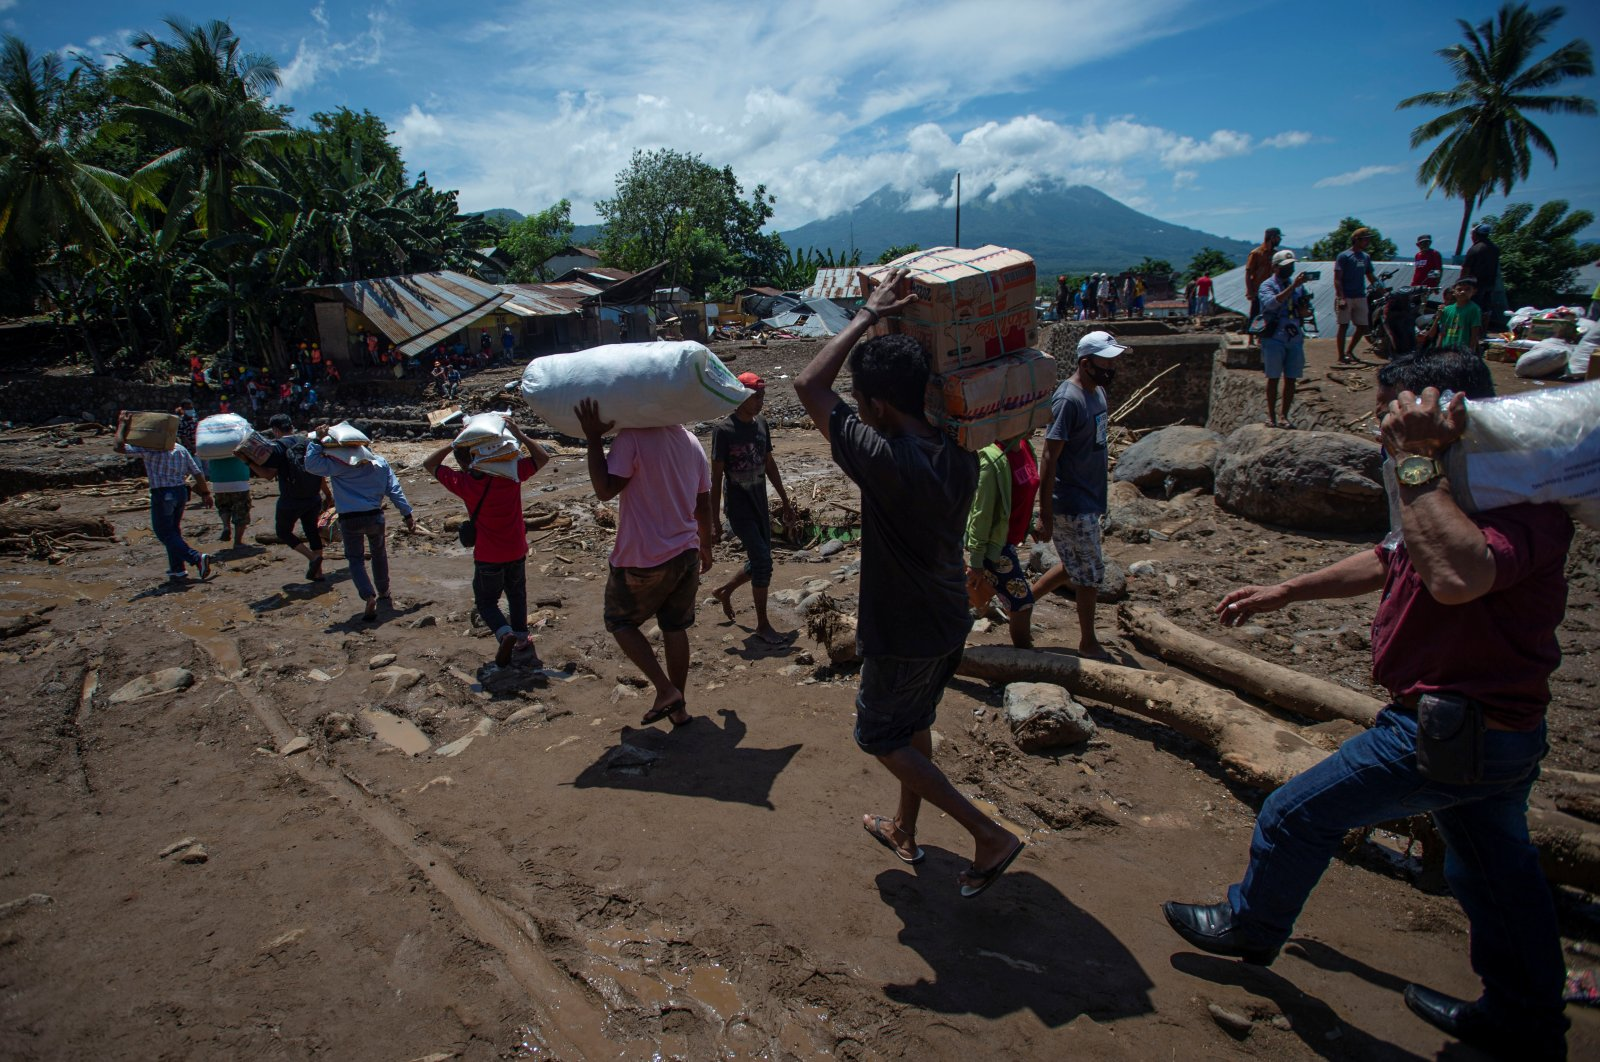 People carry relief supplies following flash floods triggered by tropical cyclone Seroja in East Flores, East Nusa Tenggara province, Indonesia, April 7, 2021. (Antara Foto via Reuters)